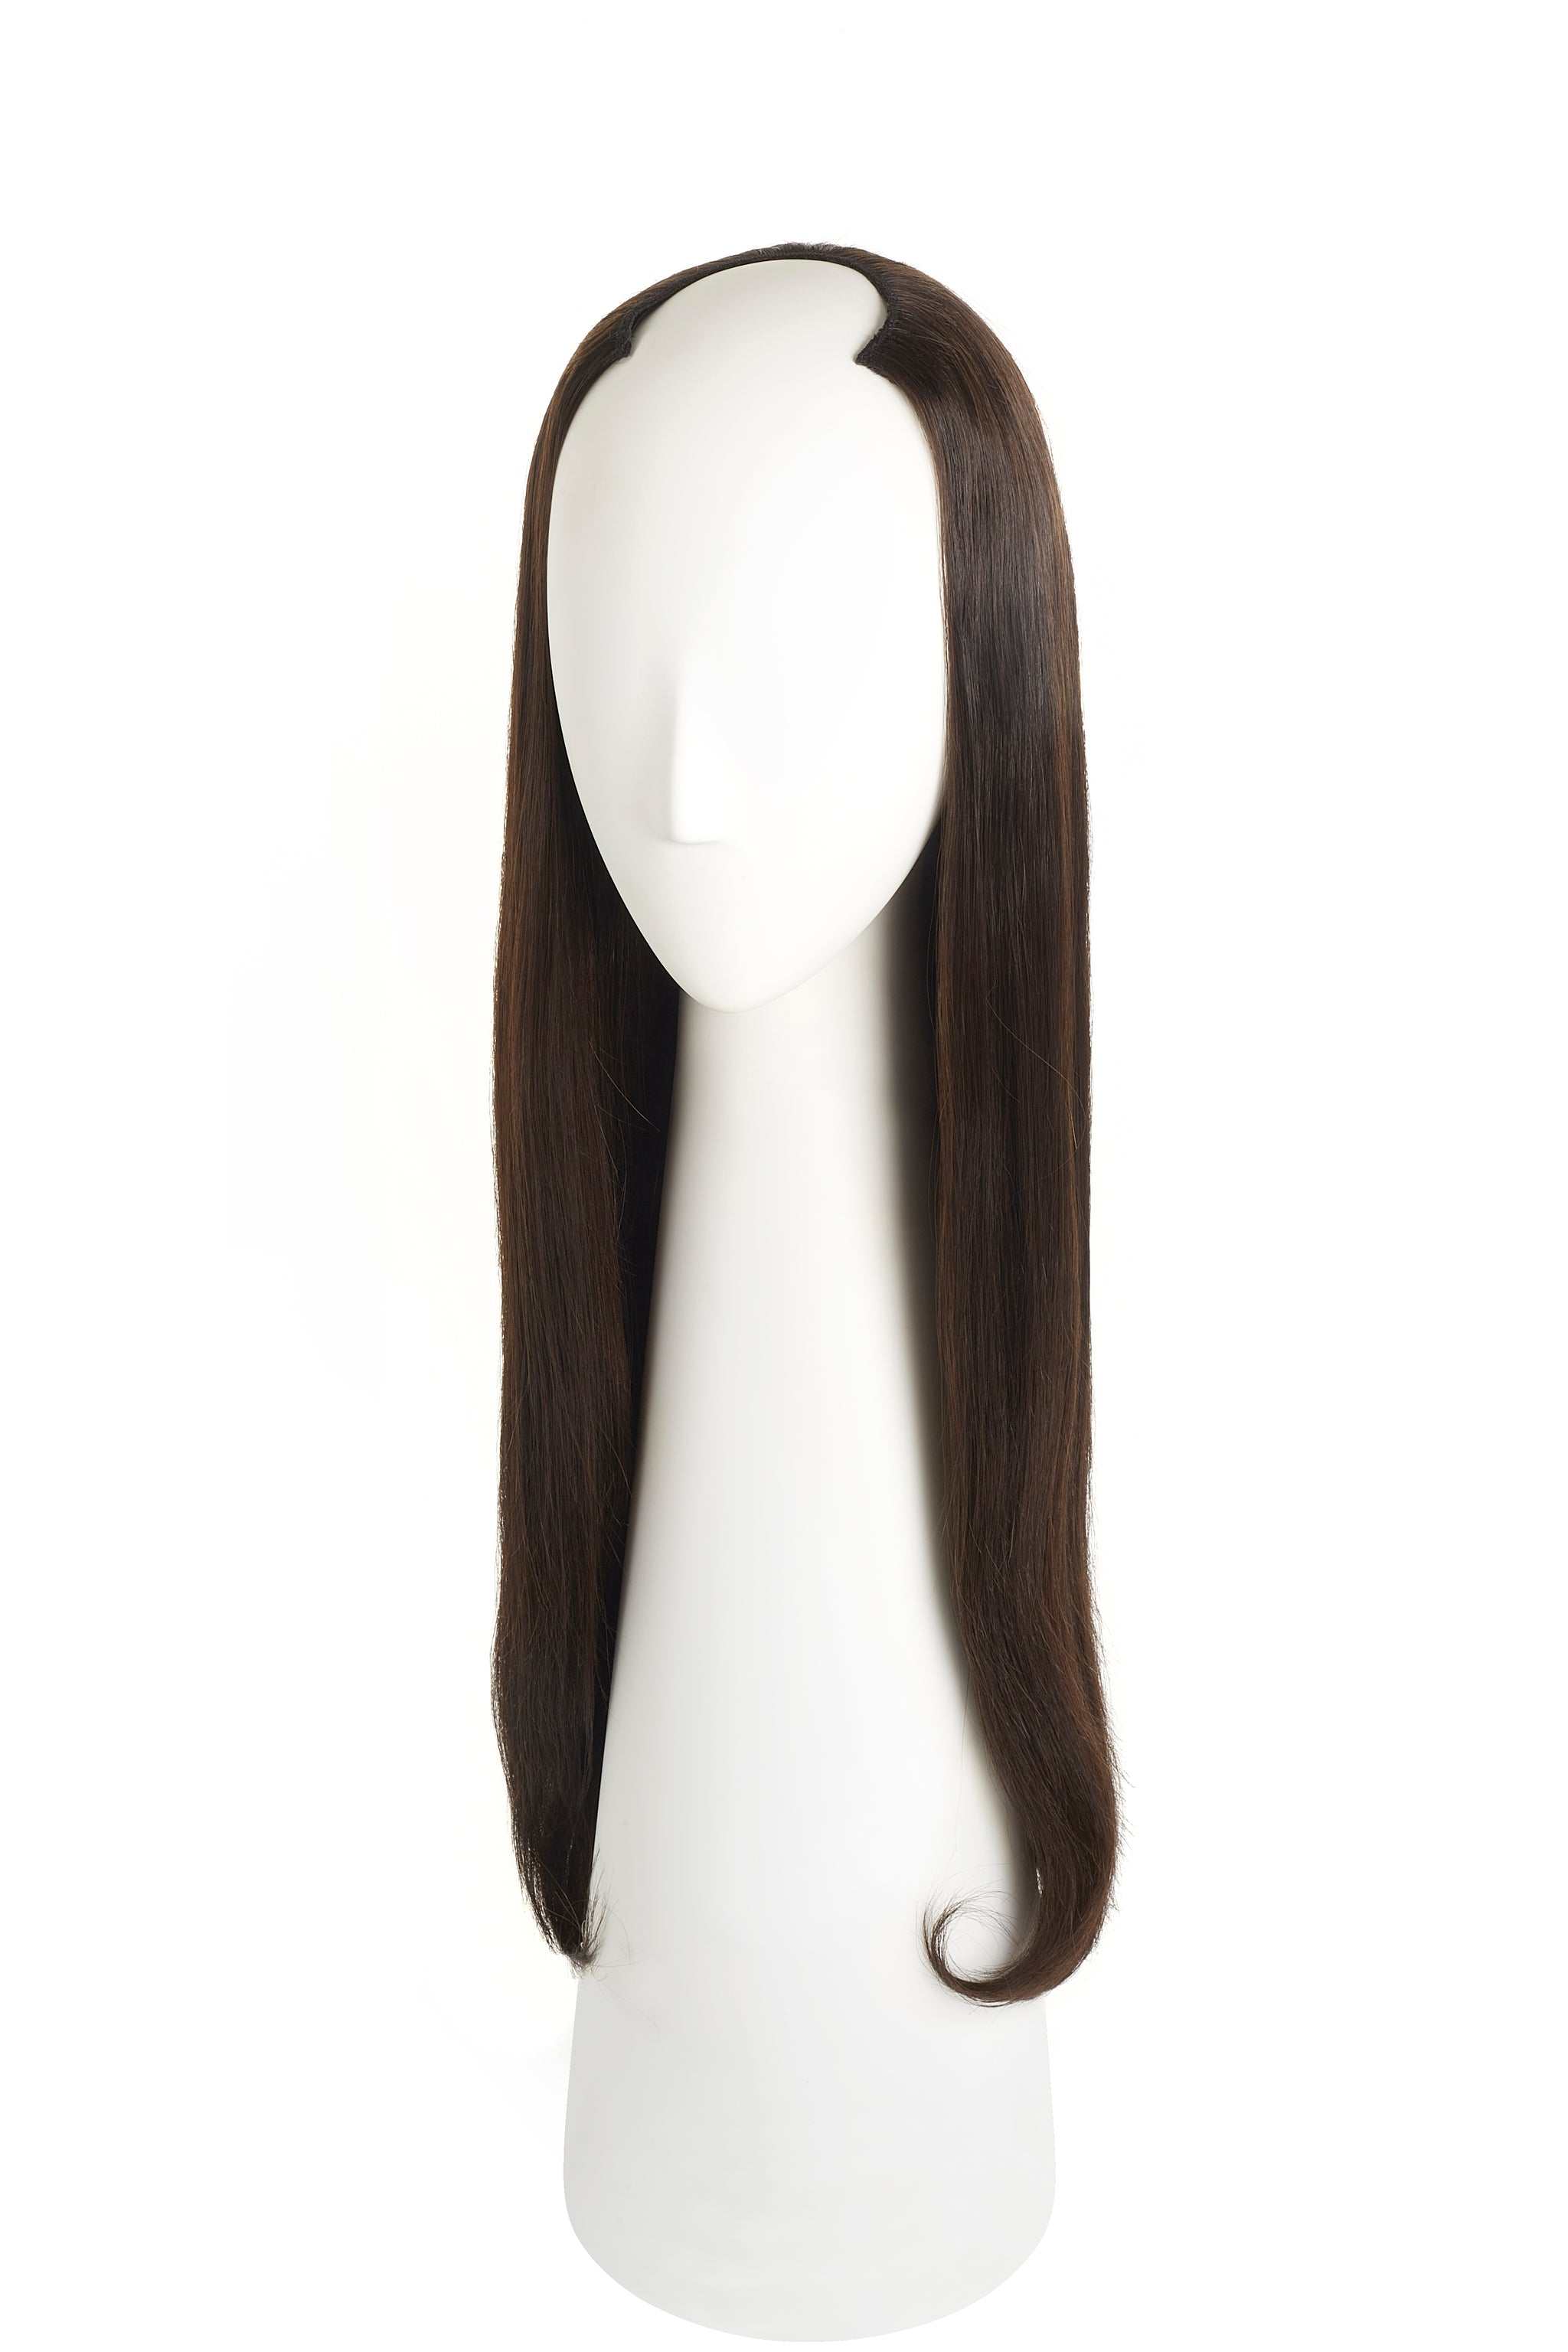 Natural Black (1B) U-Part Wig